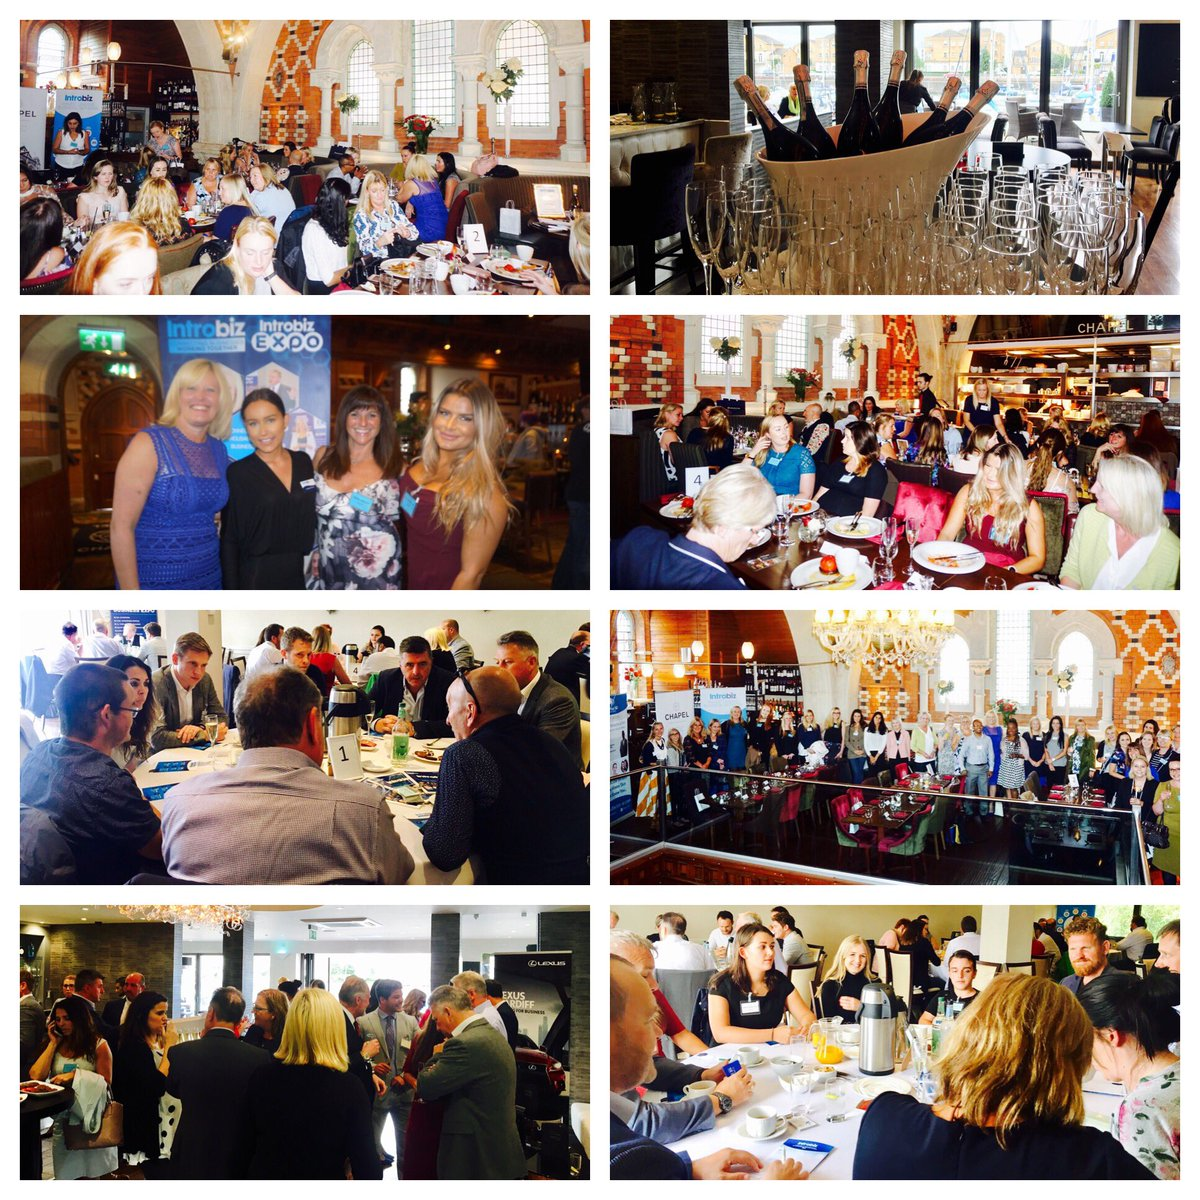 Exciting News...Over £2M of business achieved in August #Introbiz #Networking Events keep up the great work members  http://www. introbiz.co.uk/cardiff-busine ss-networking-events-wales/diary/ &nbsp; … <br>http://pic.twitter.com/KaRH6L7cqd